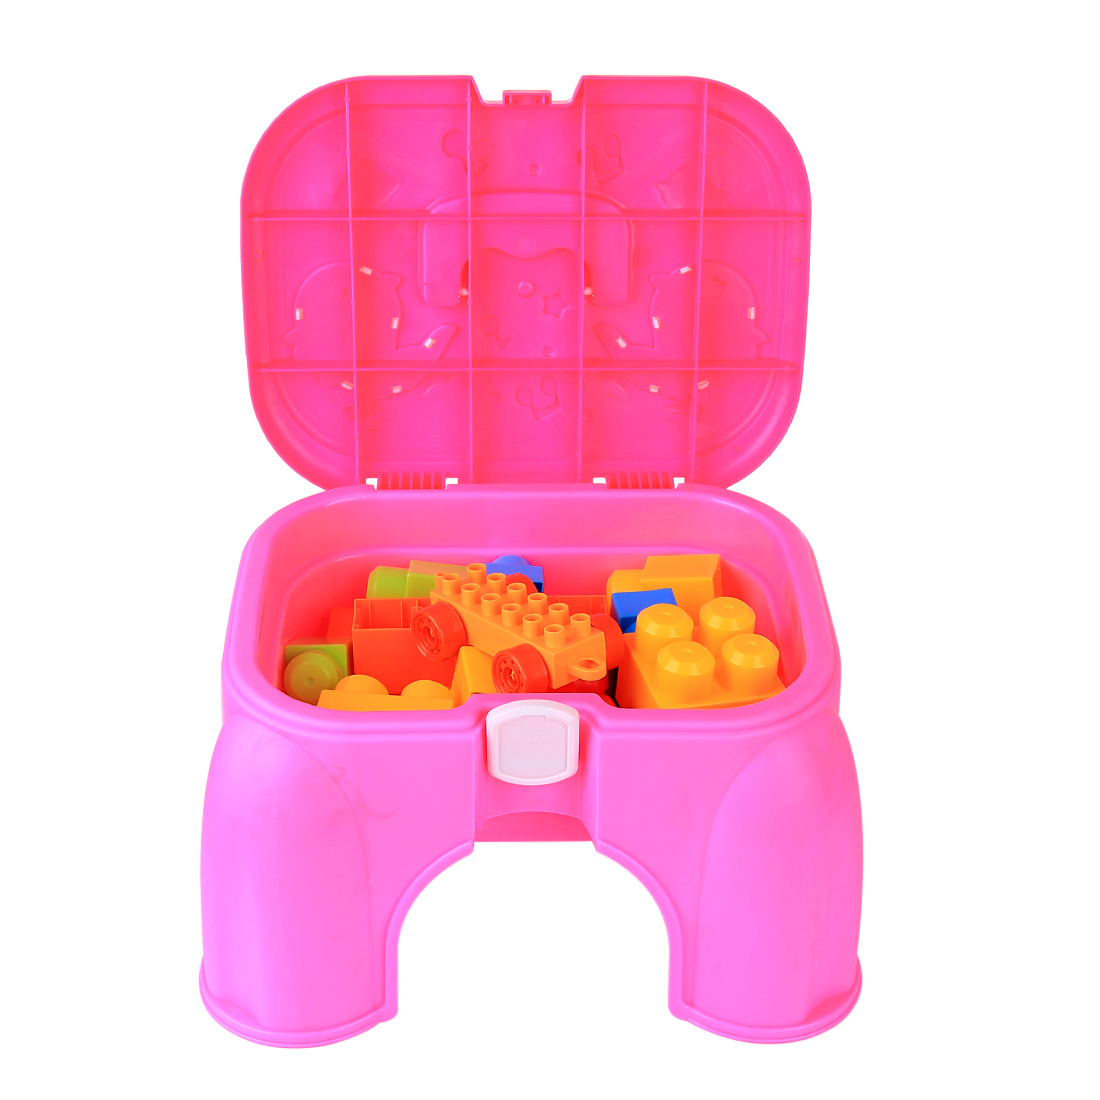 20Pcs Outdoor Beach Toy Play Sand Toys Storage Chair Playset Gift For Kids Toys Beach Sand Tools For Children ( Parts Random )